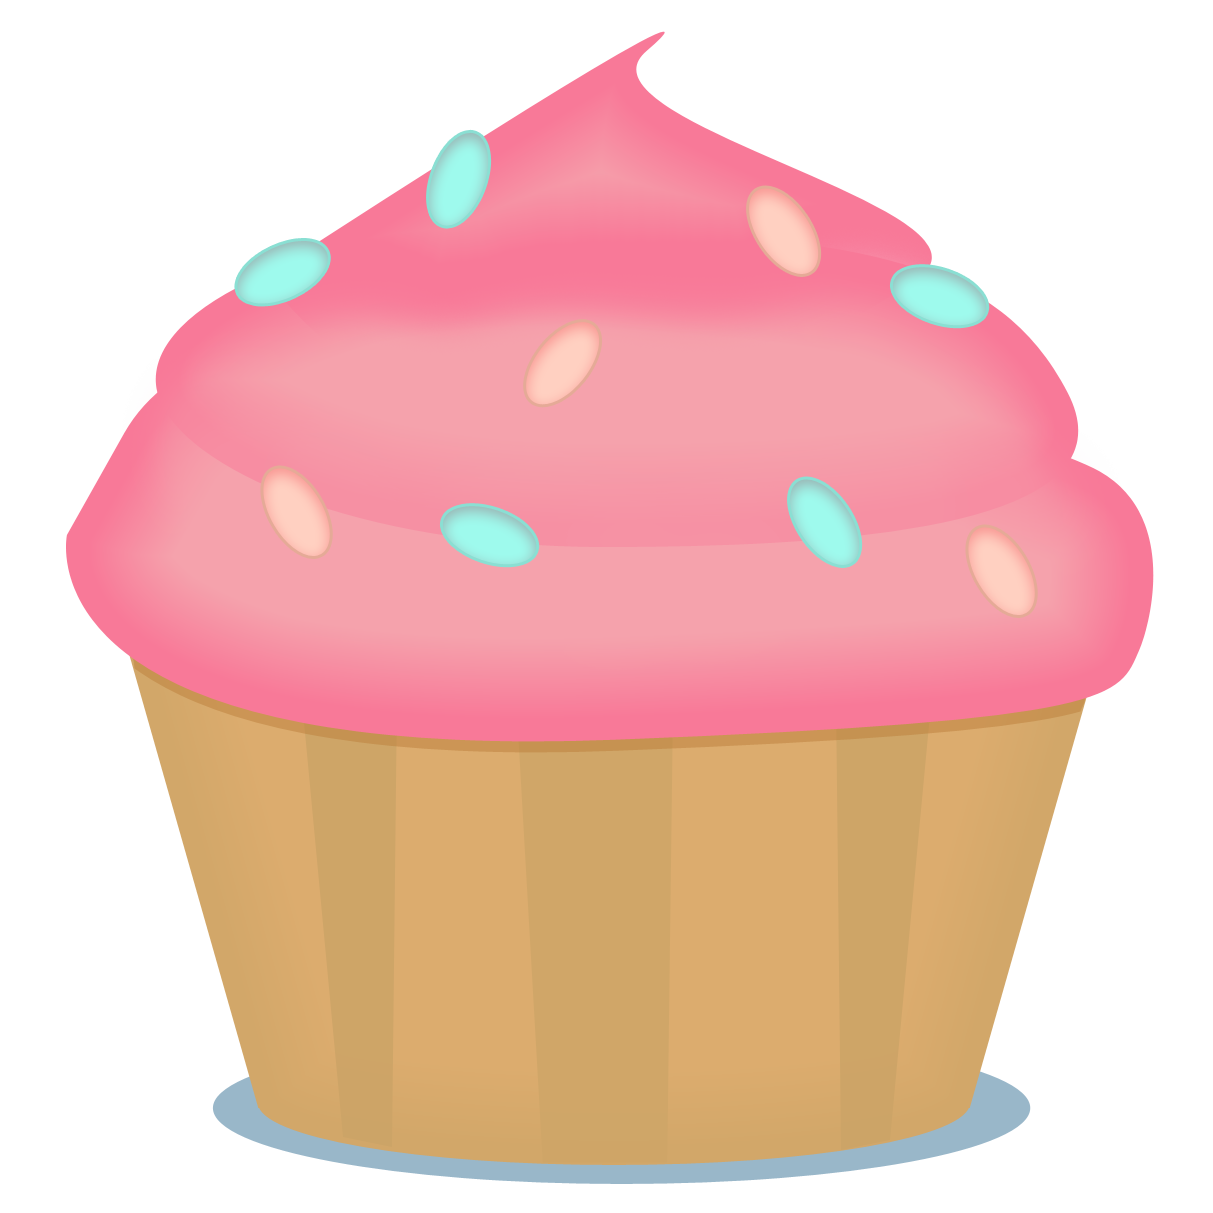 Retro clipart dizzy. Baked goods group baking